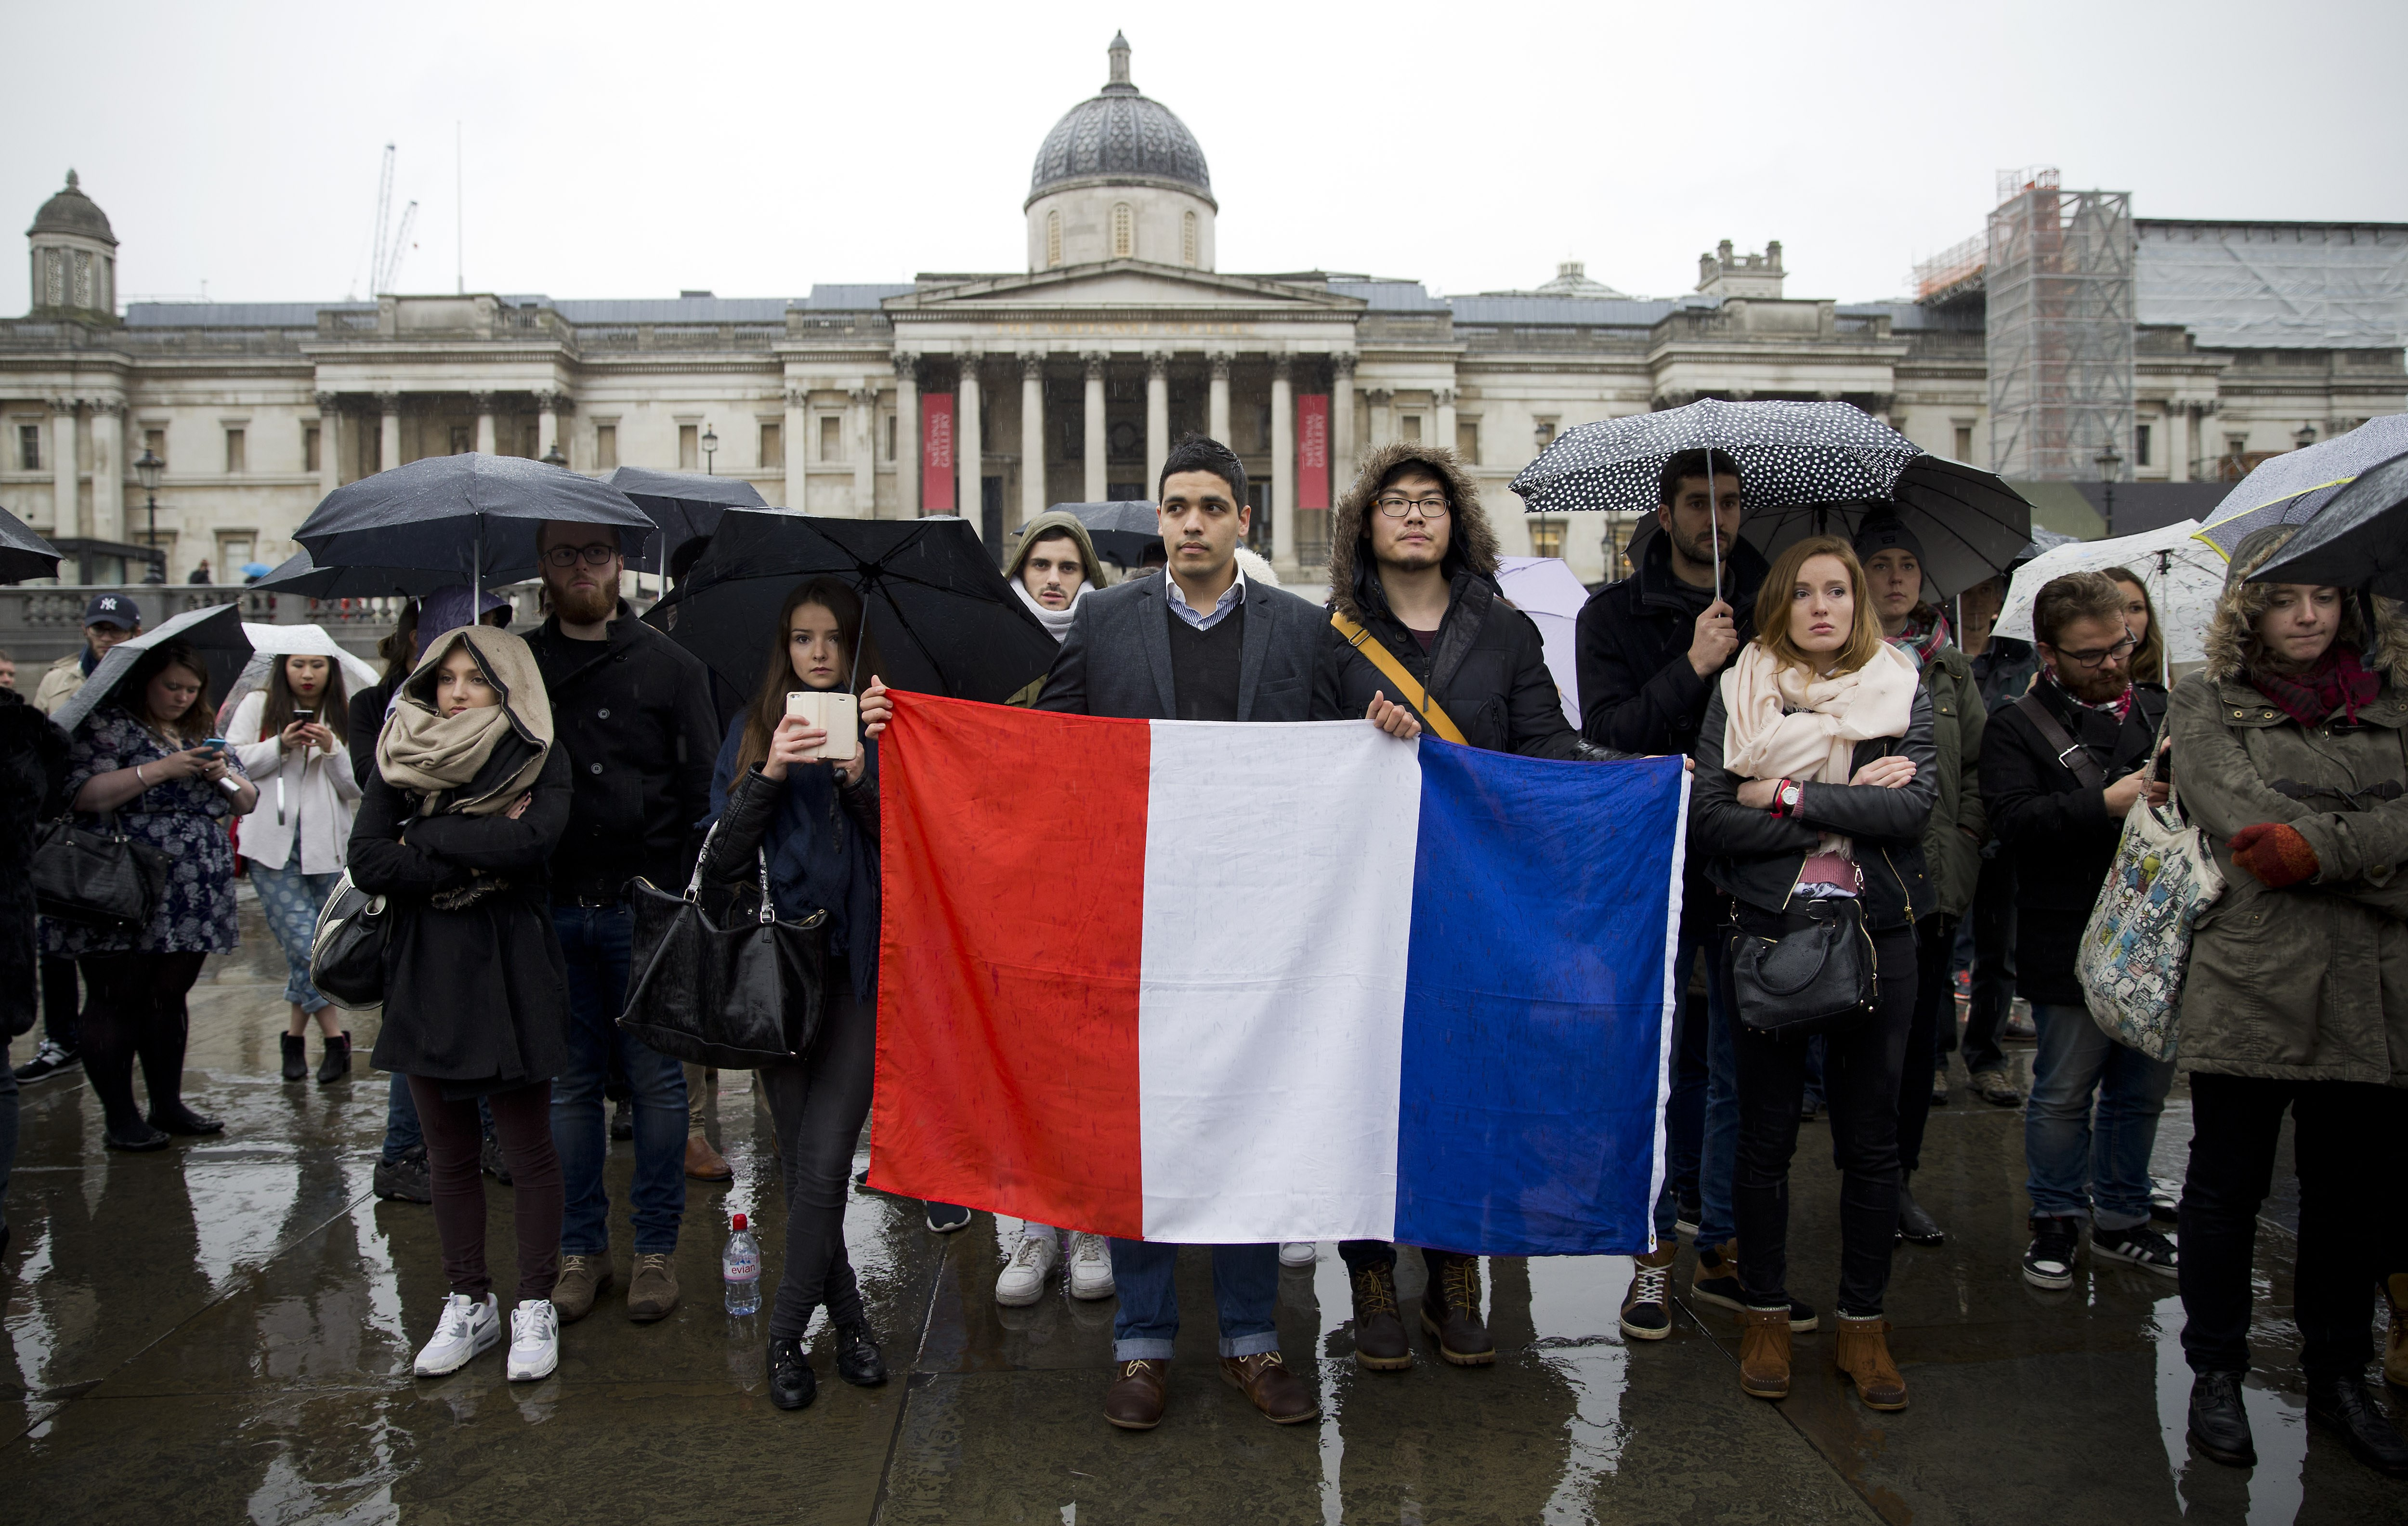 People hold a French national flags as they gather in Trafalgar Square, central London on Nov. 14, 2015.